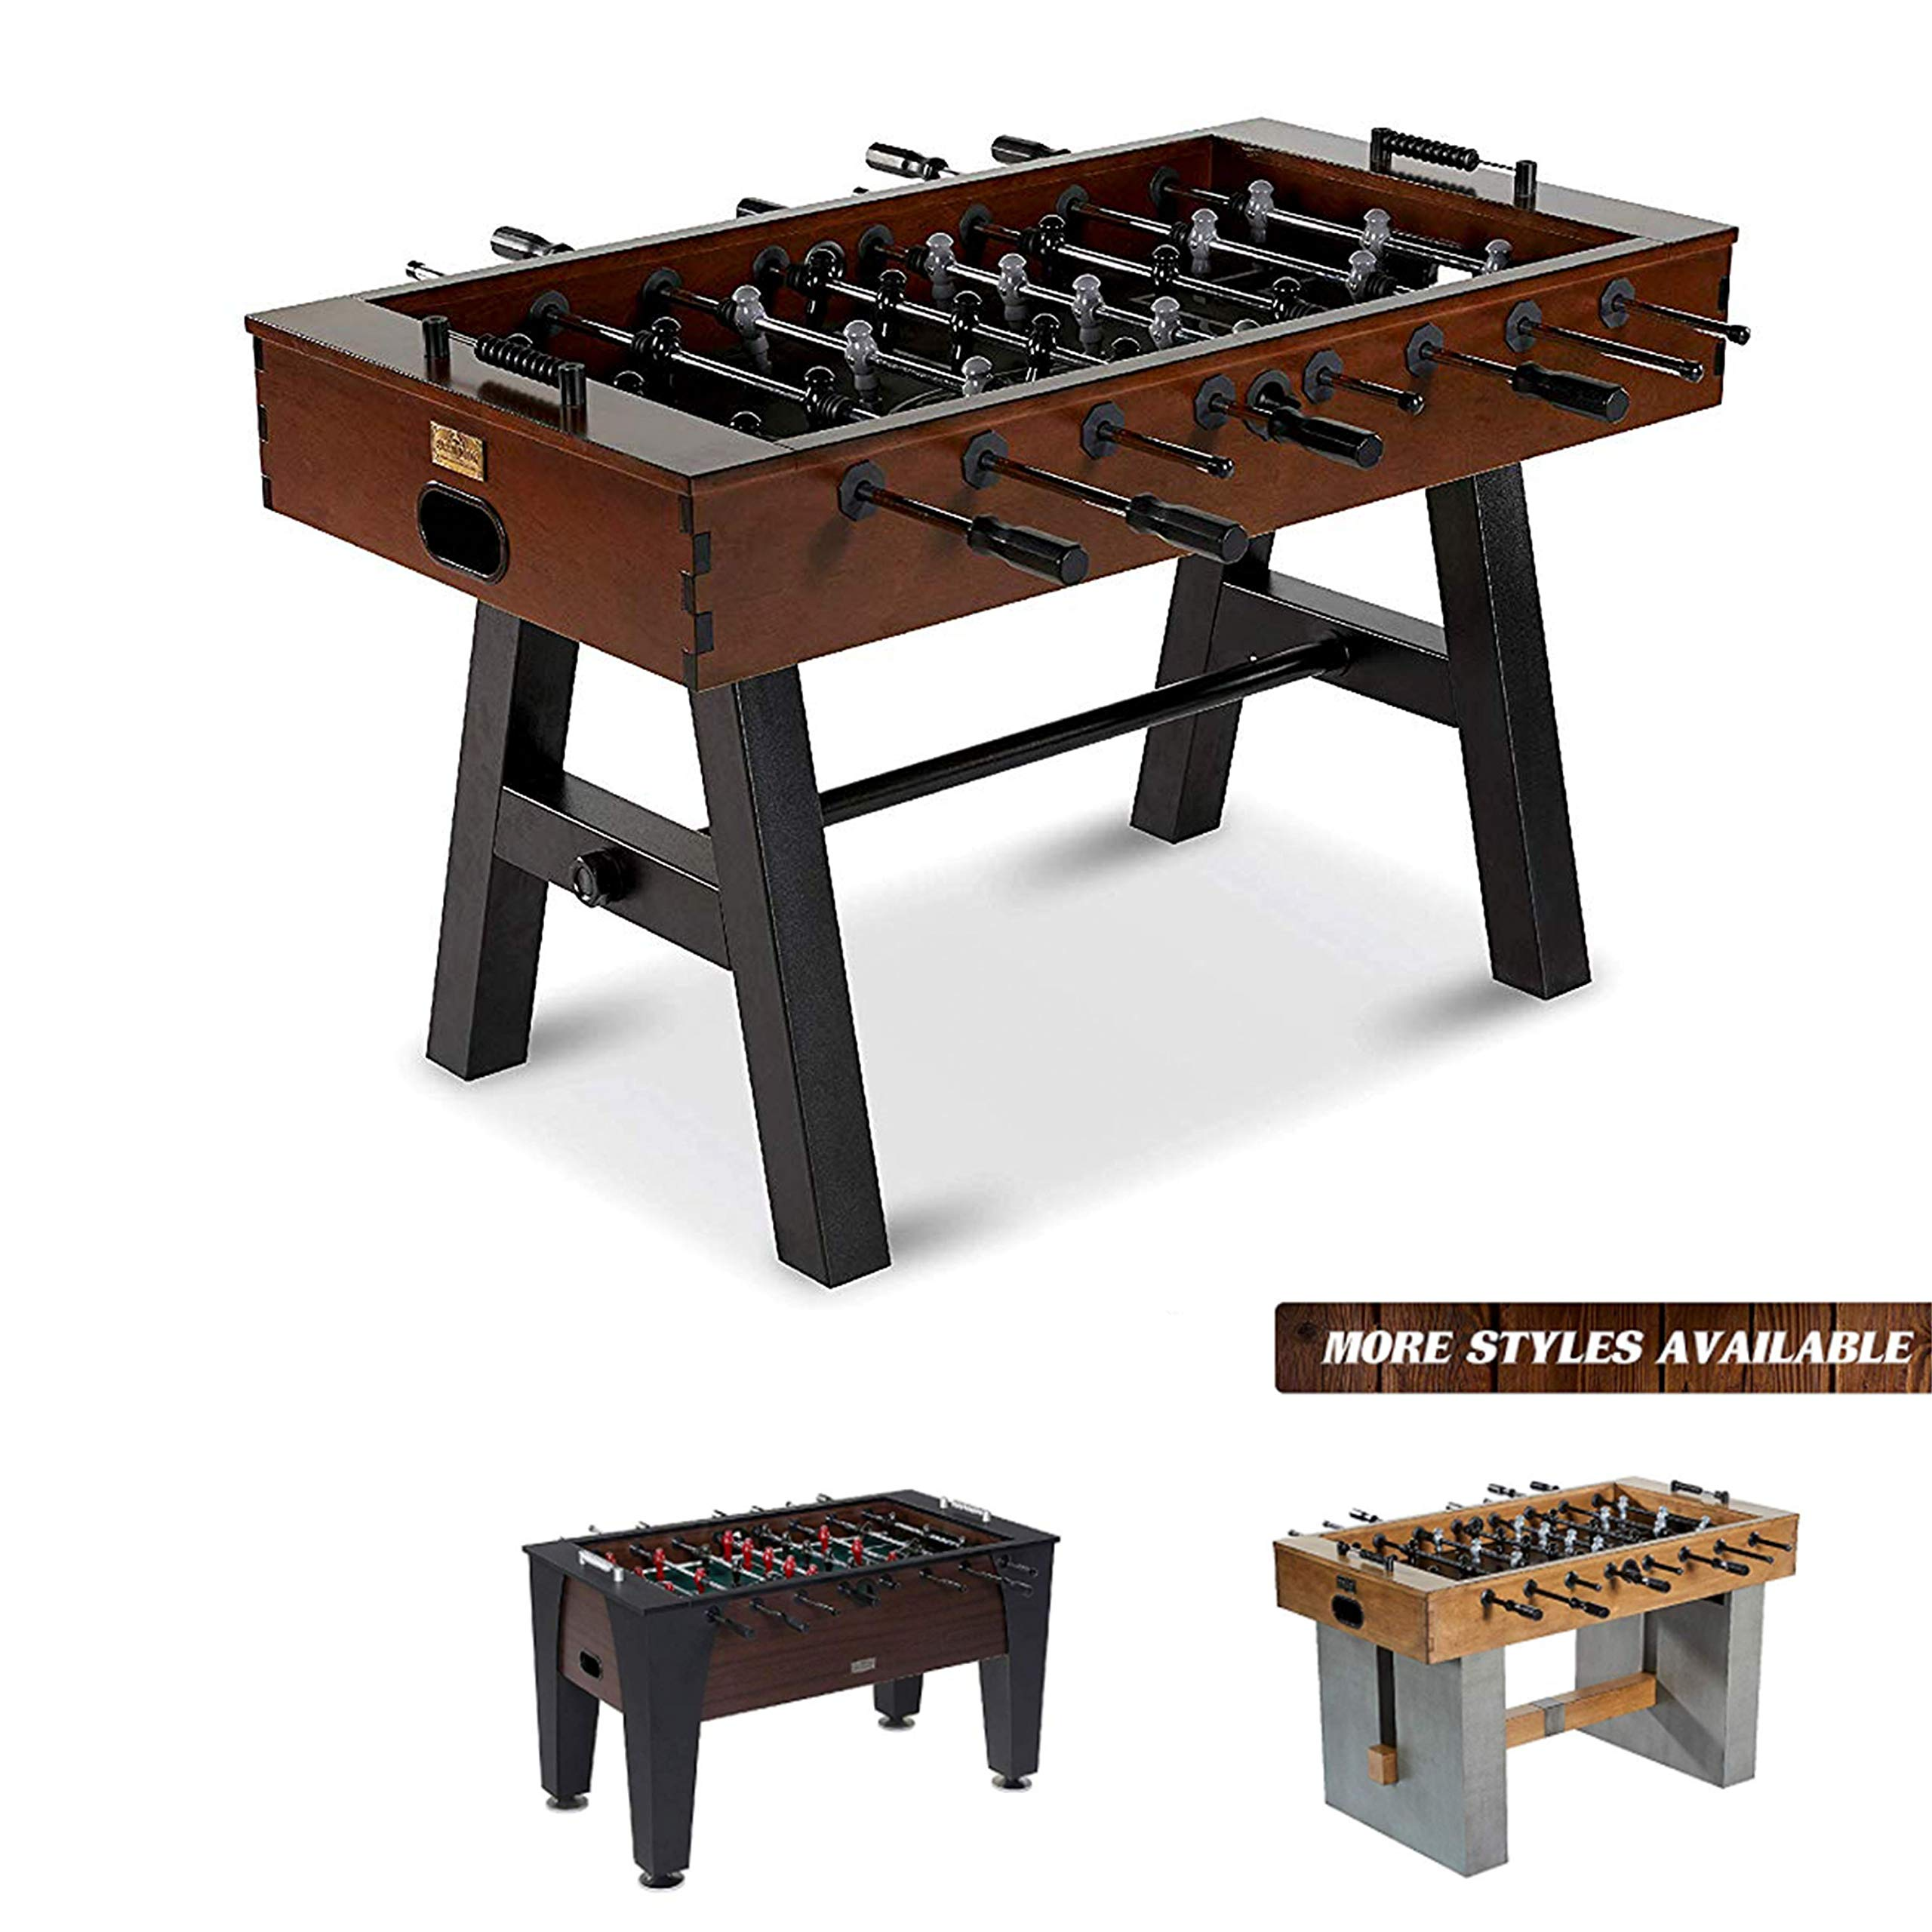 BARRINGTON 56 inch Allendale Collection Foosball Table by Barrington Billiards